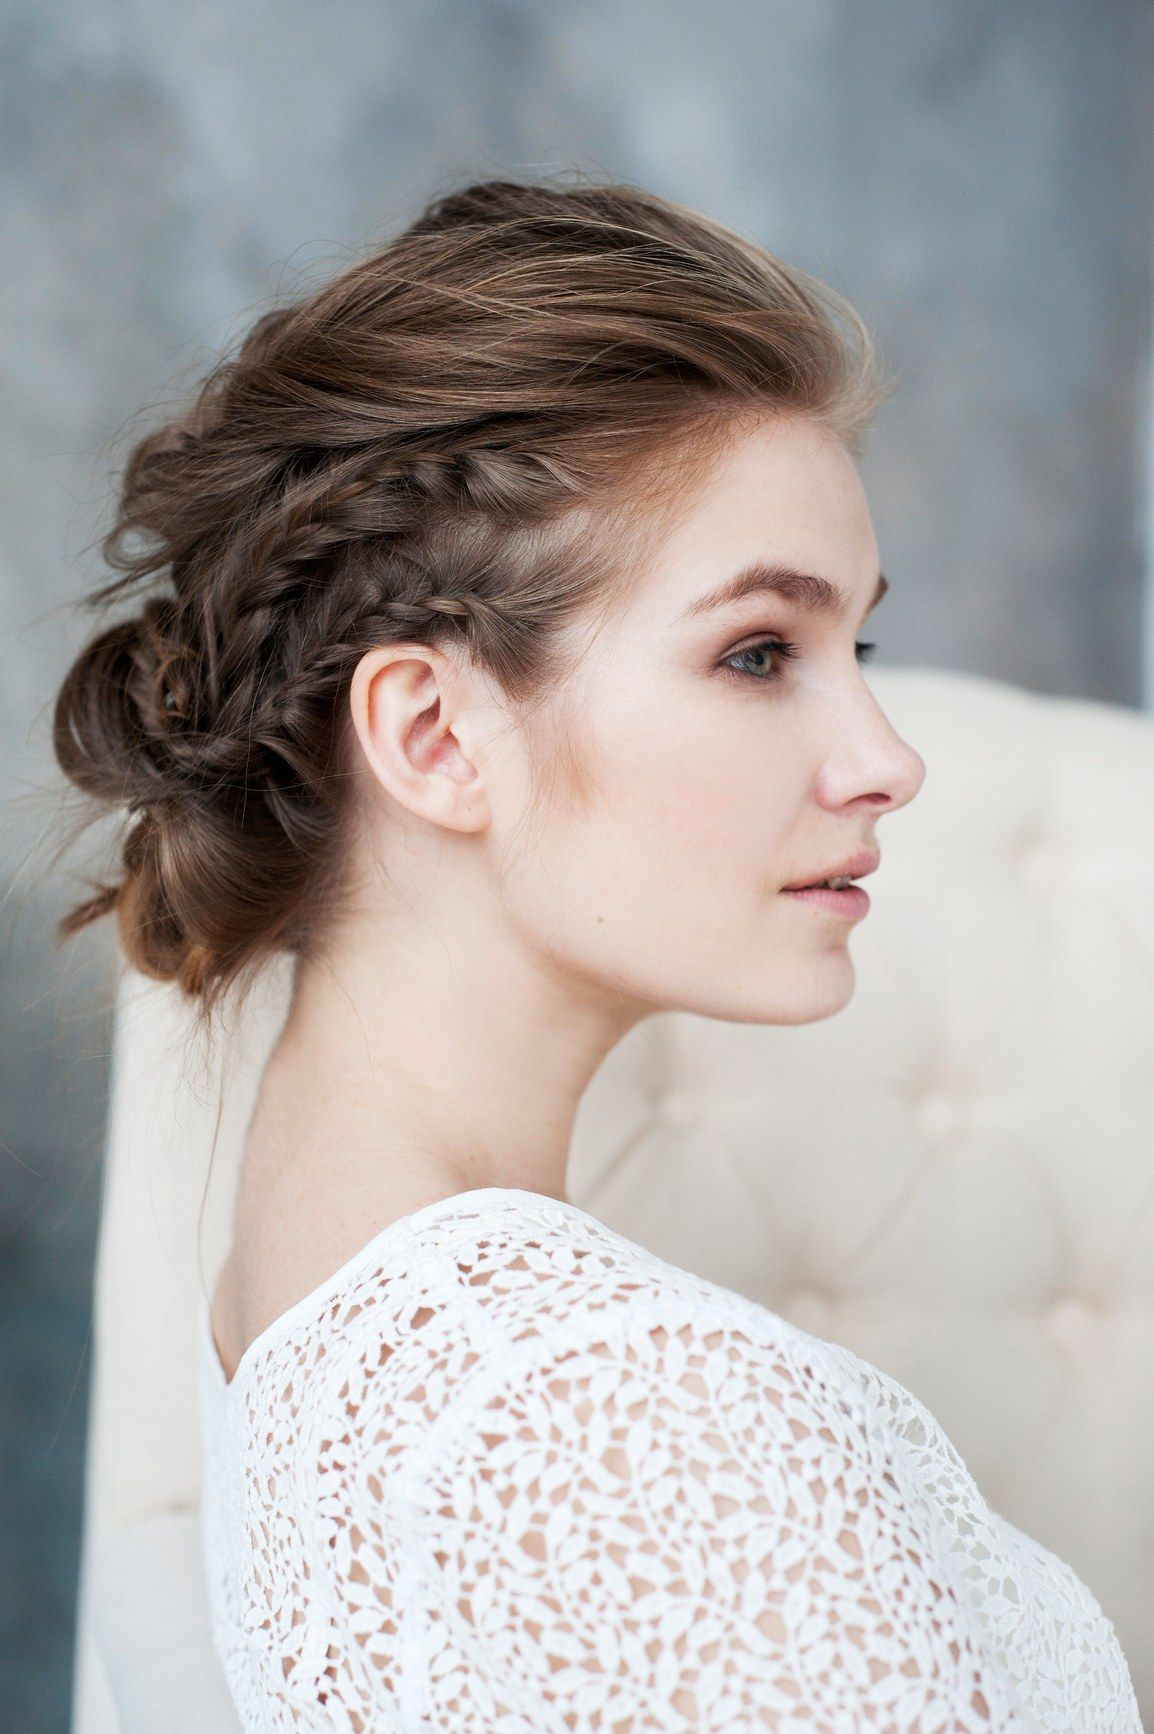 This is the number one french girl hairstyle on pinterest now girl